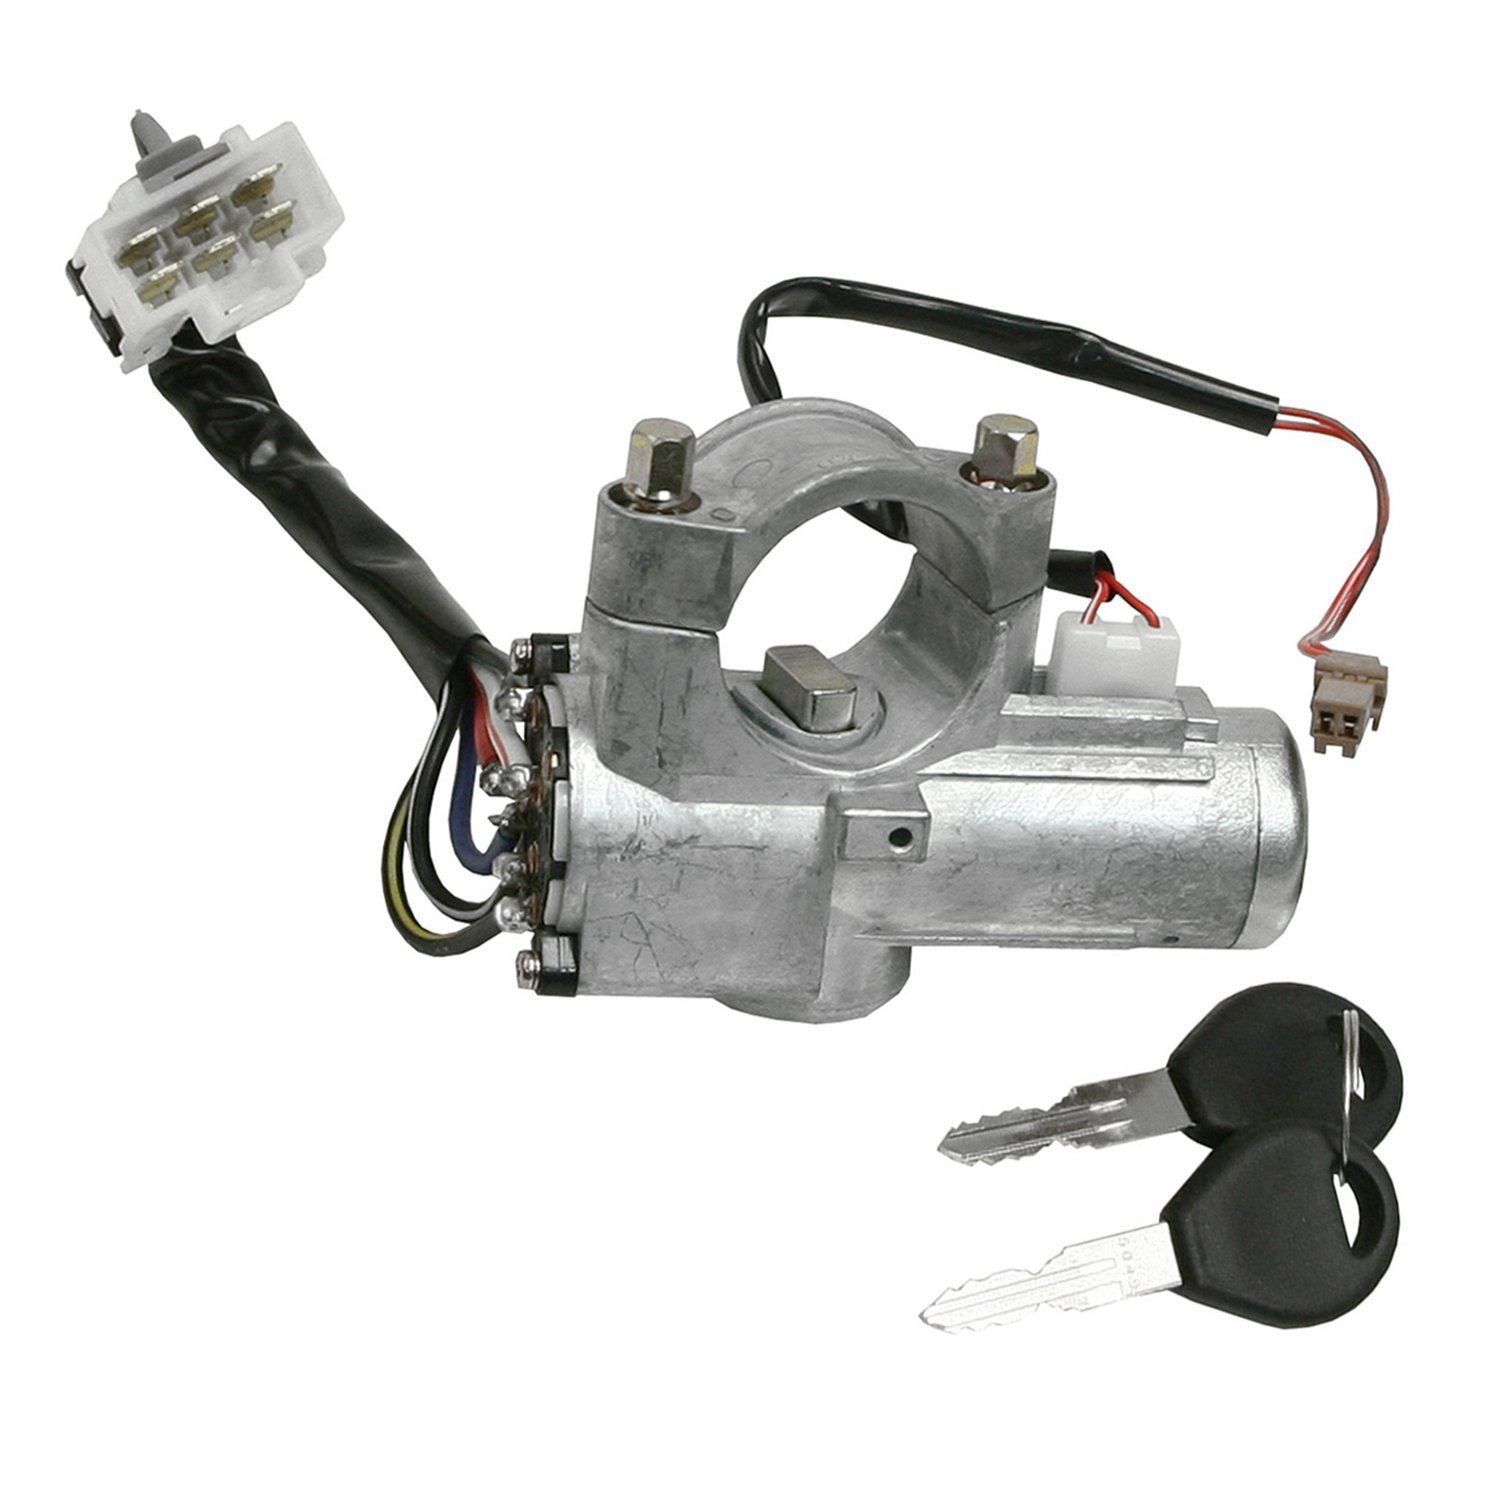 Beck Arnley 201-1815 Ignition Lock Assembly BA201-1815